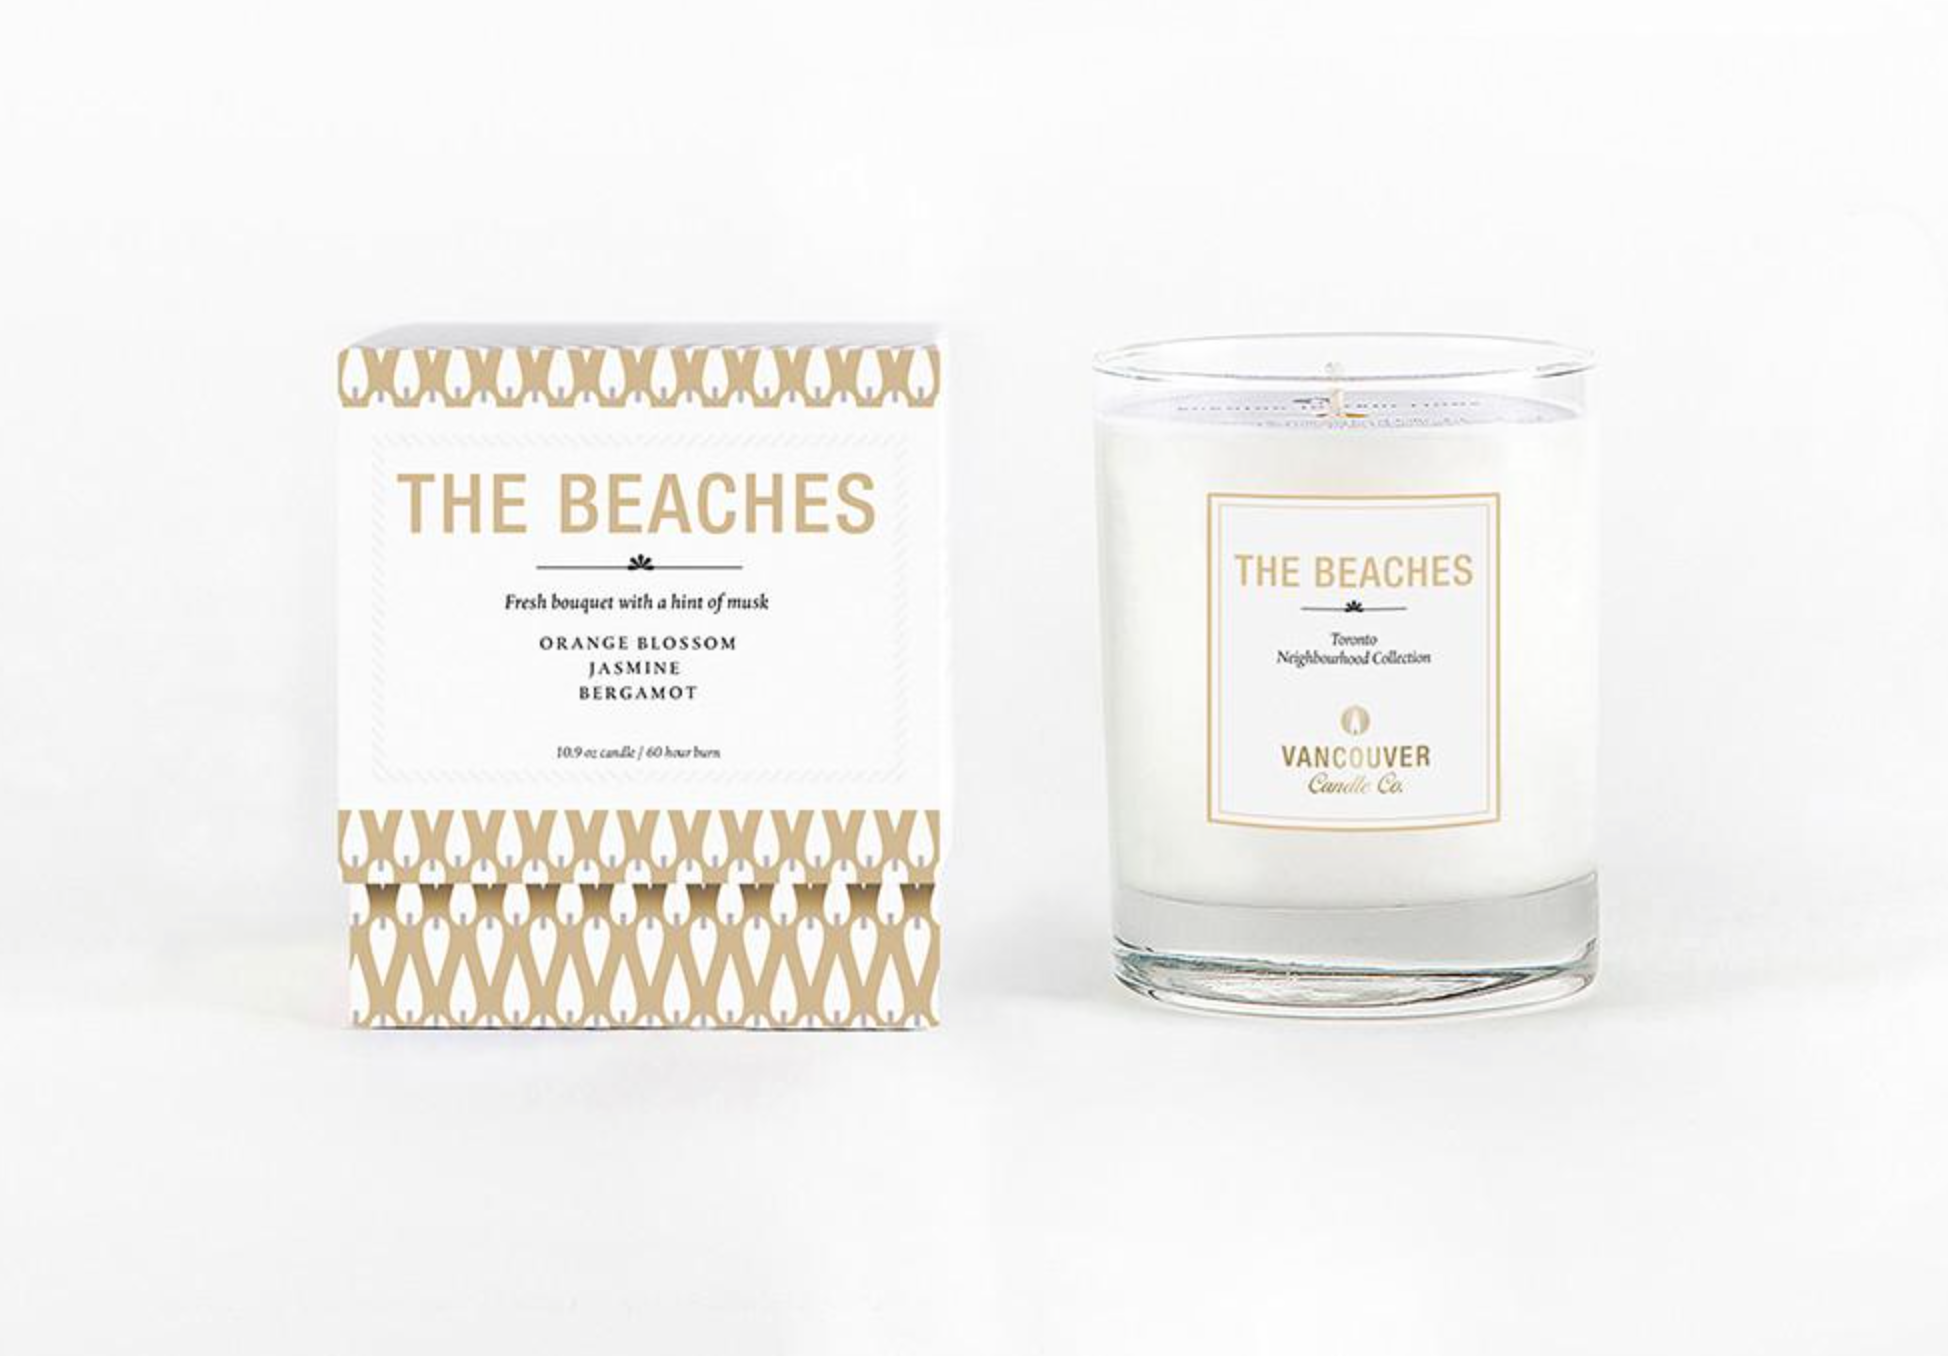 Vancouver Candle Company – The Beaches